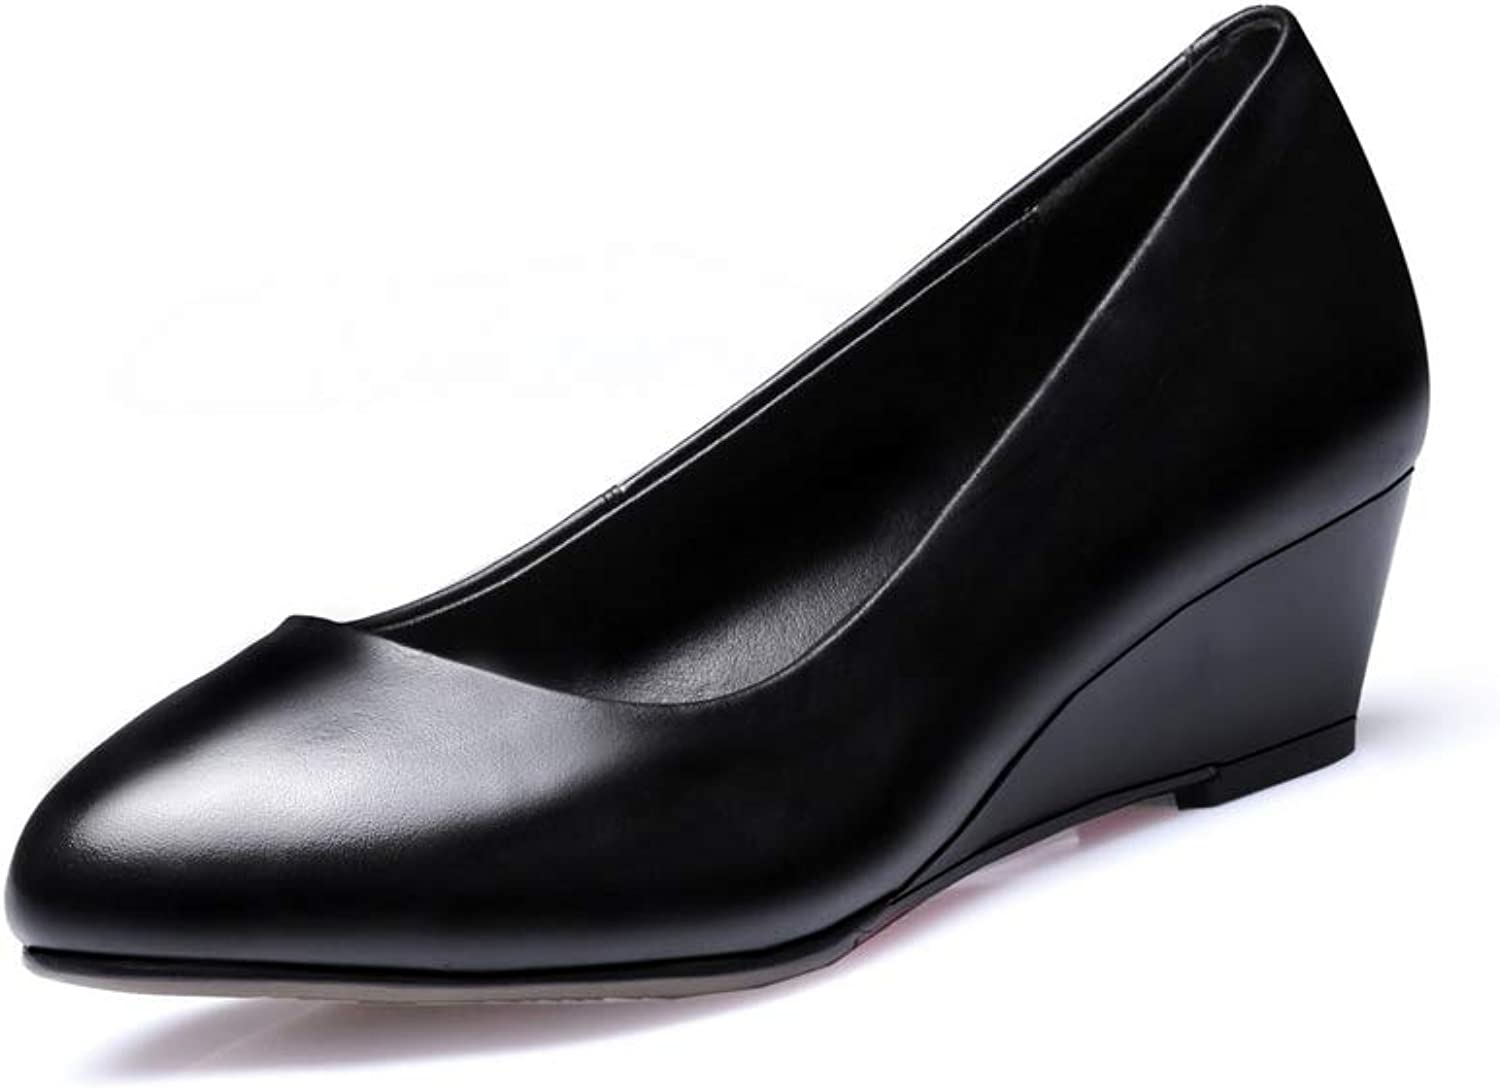 AN Womens Wedges Pointed-Toe Cow Leather Pumps shoes DGU00929